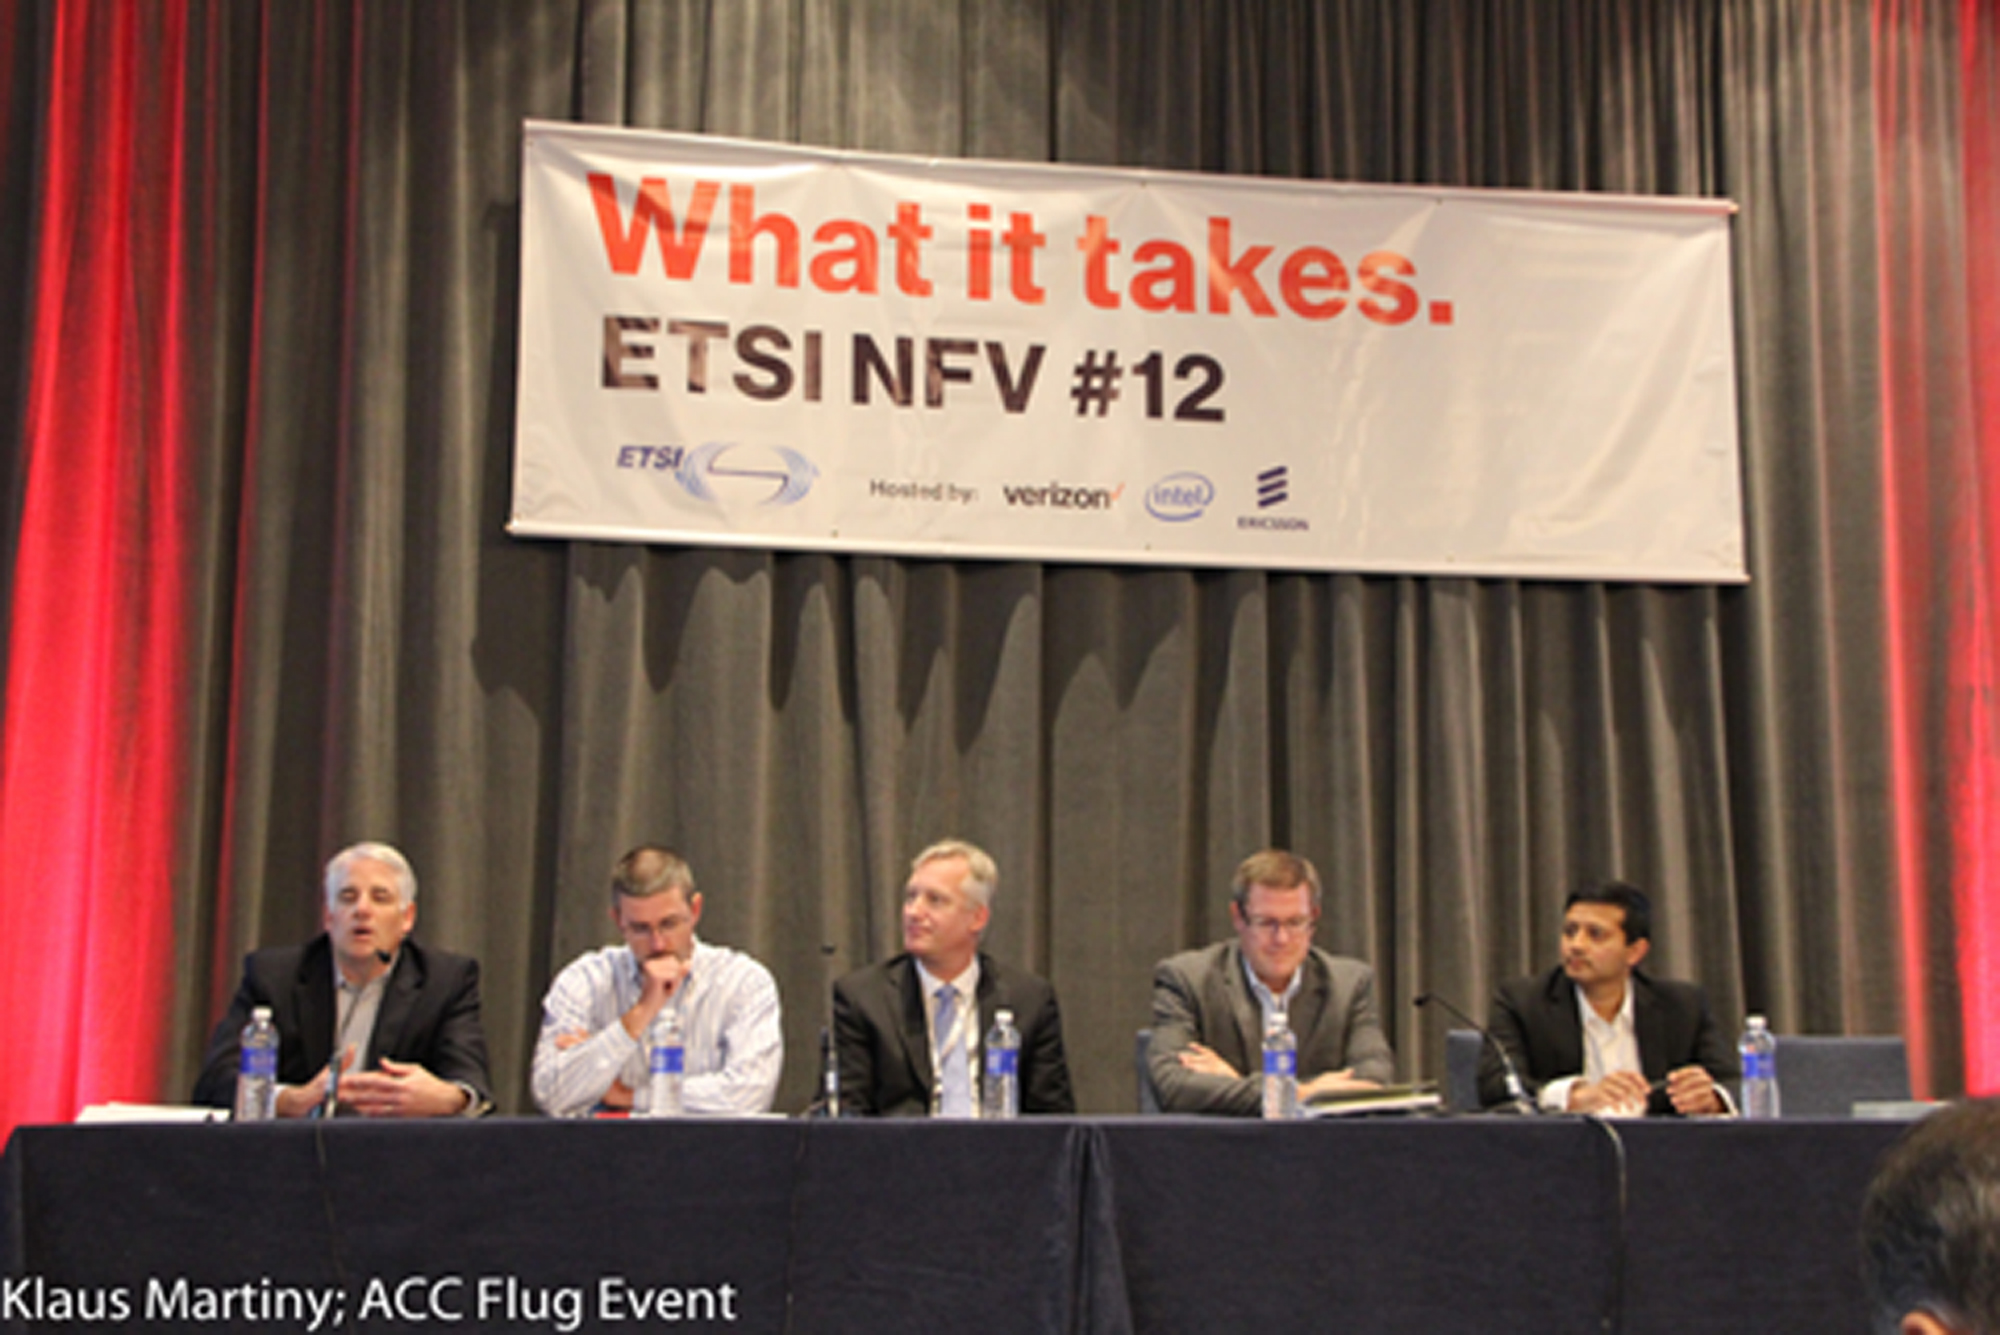 Photo of participants at nfv12